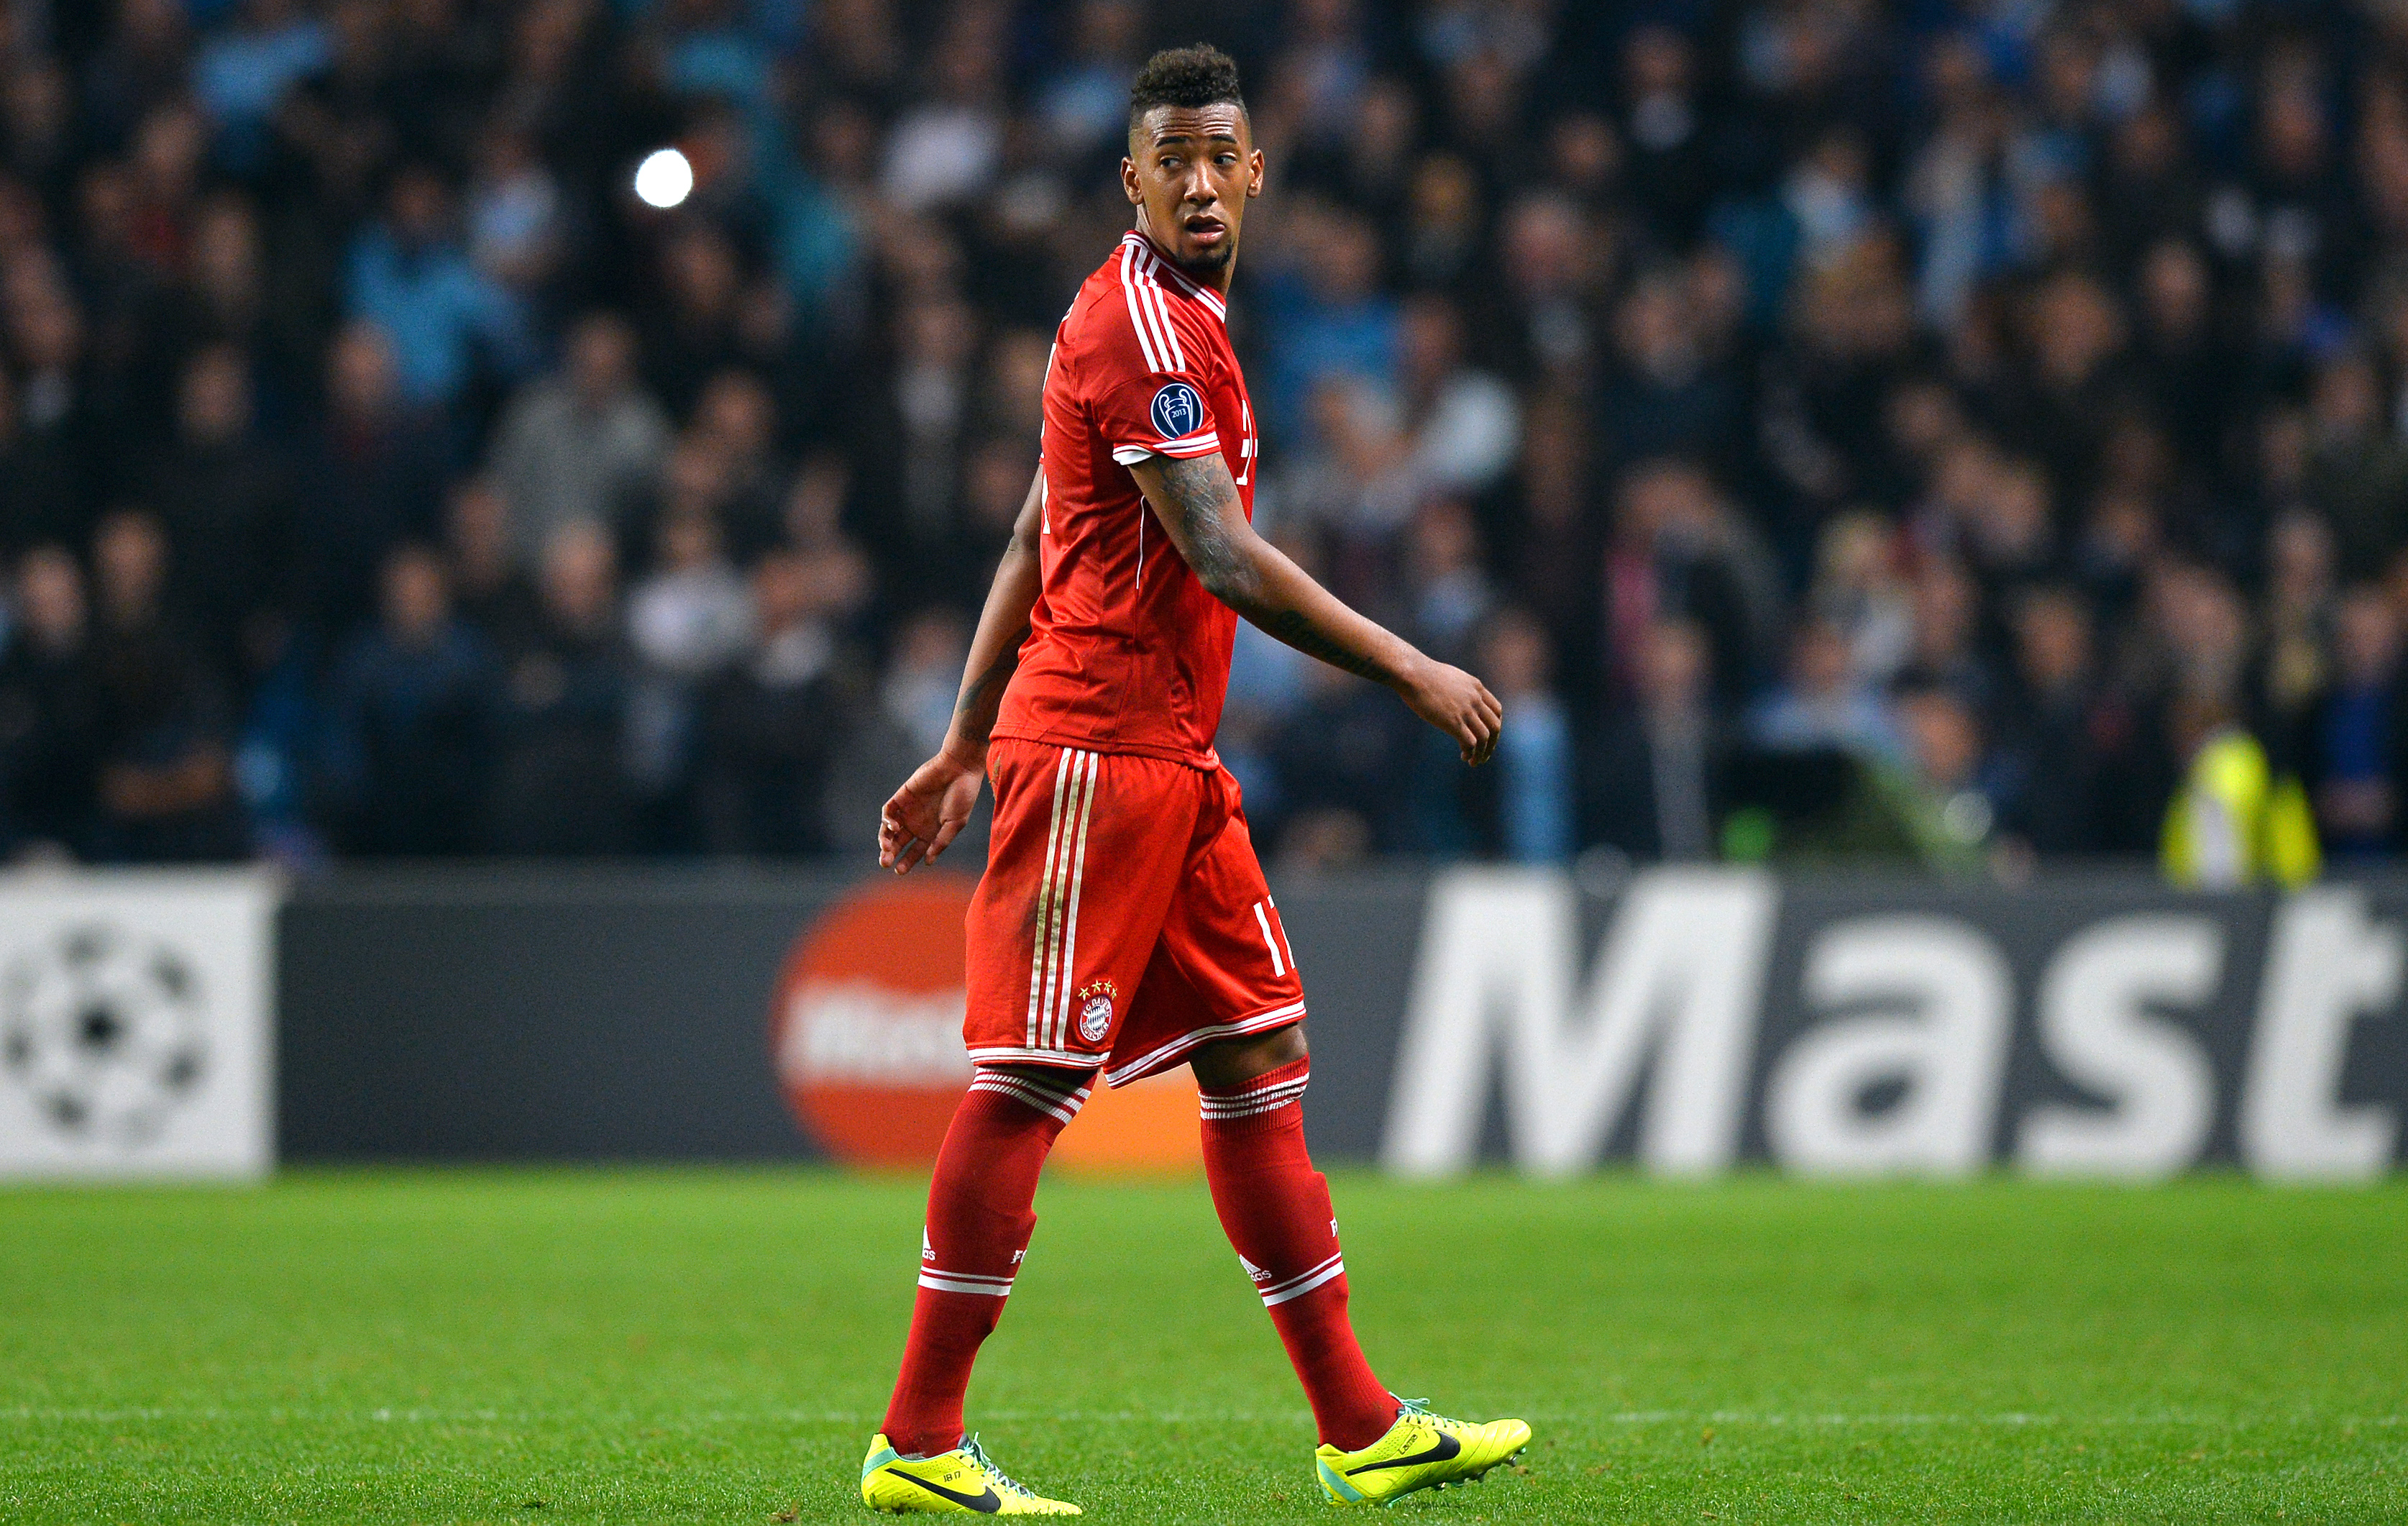 Bayern Munich's Jerome Boateng faces injury lay-off | Football ...